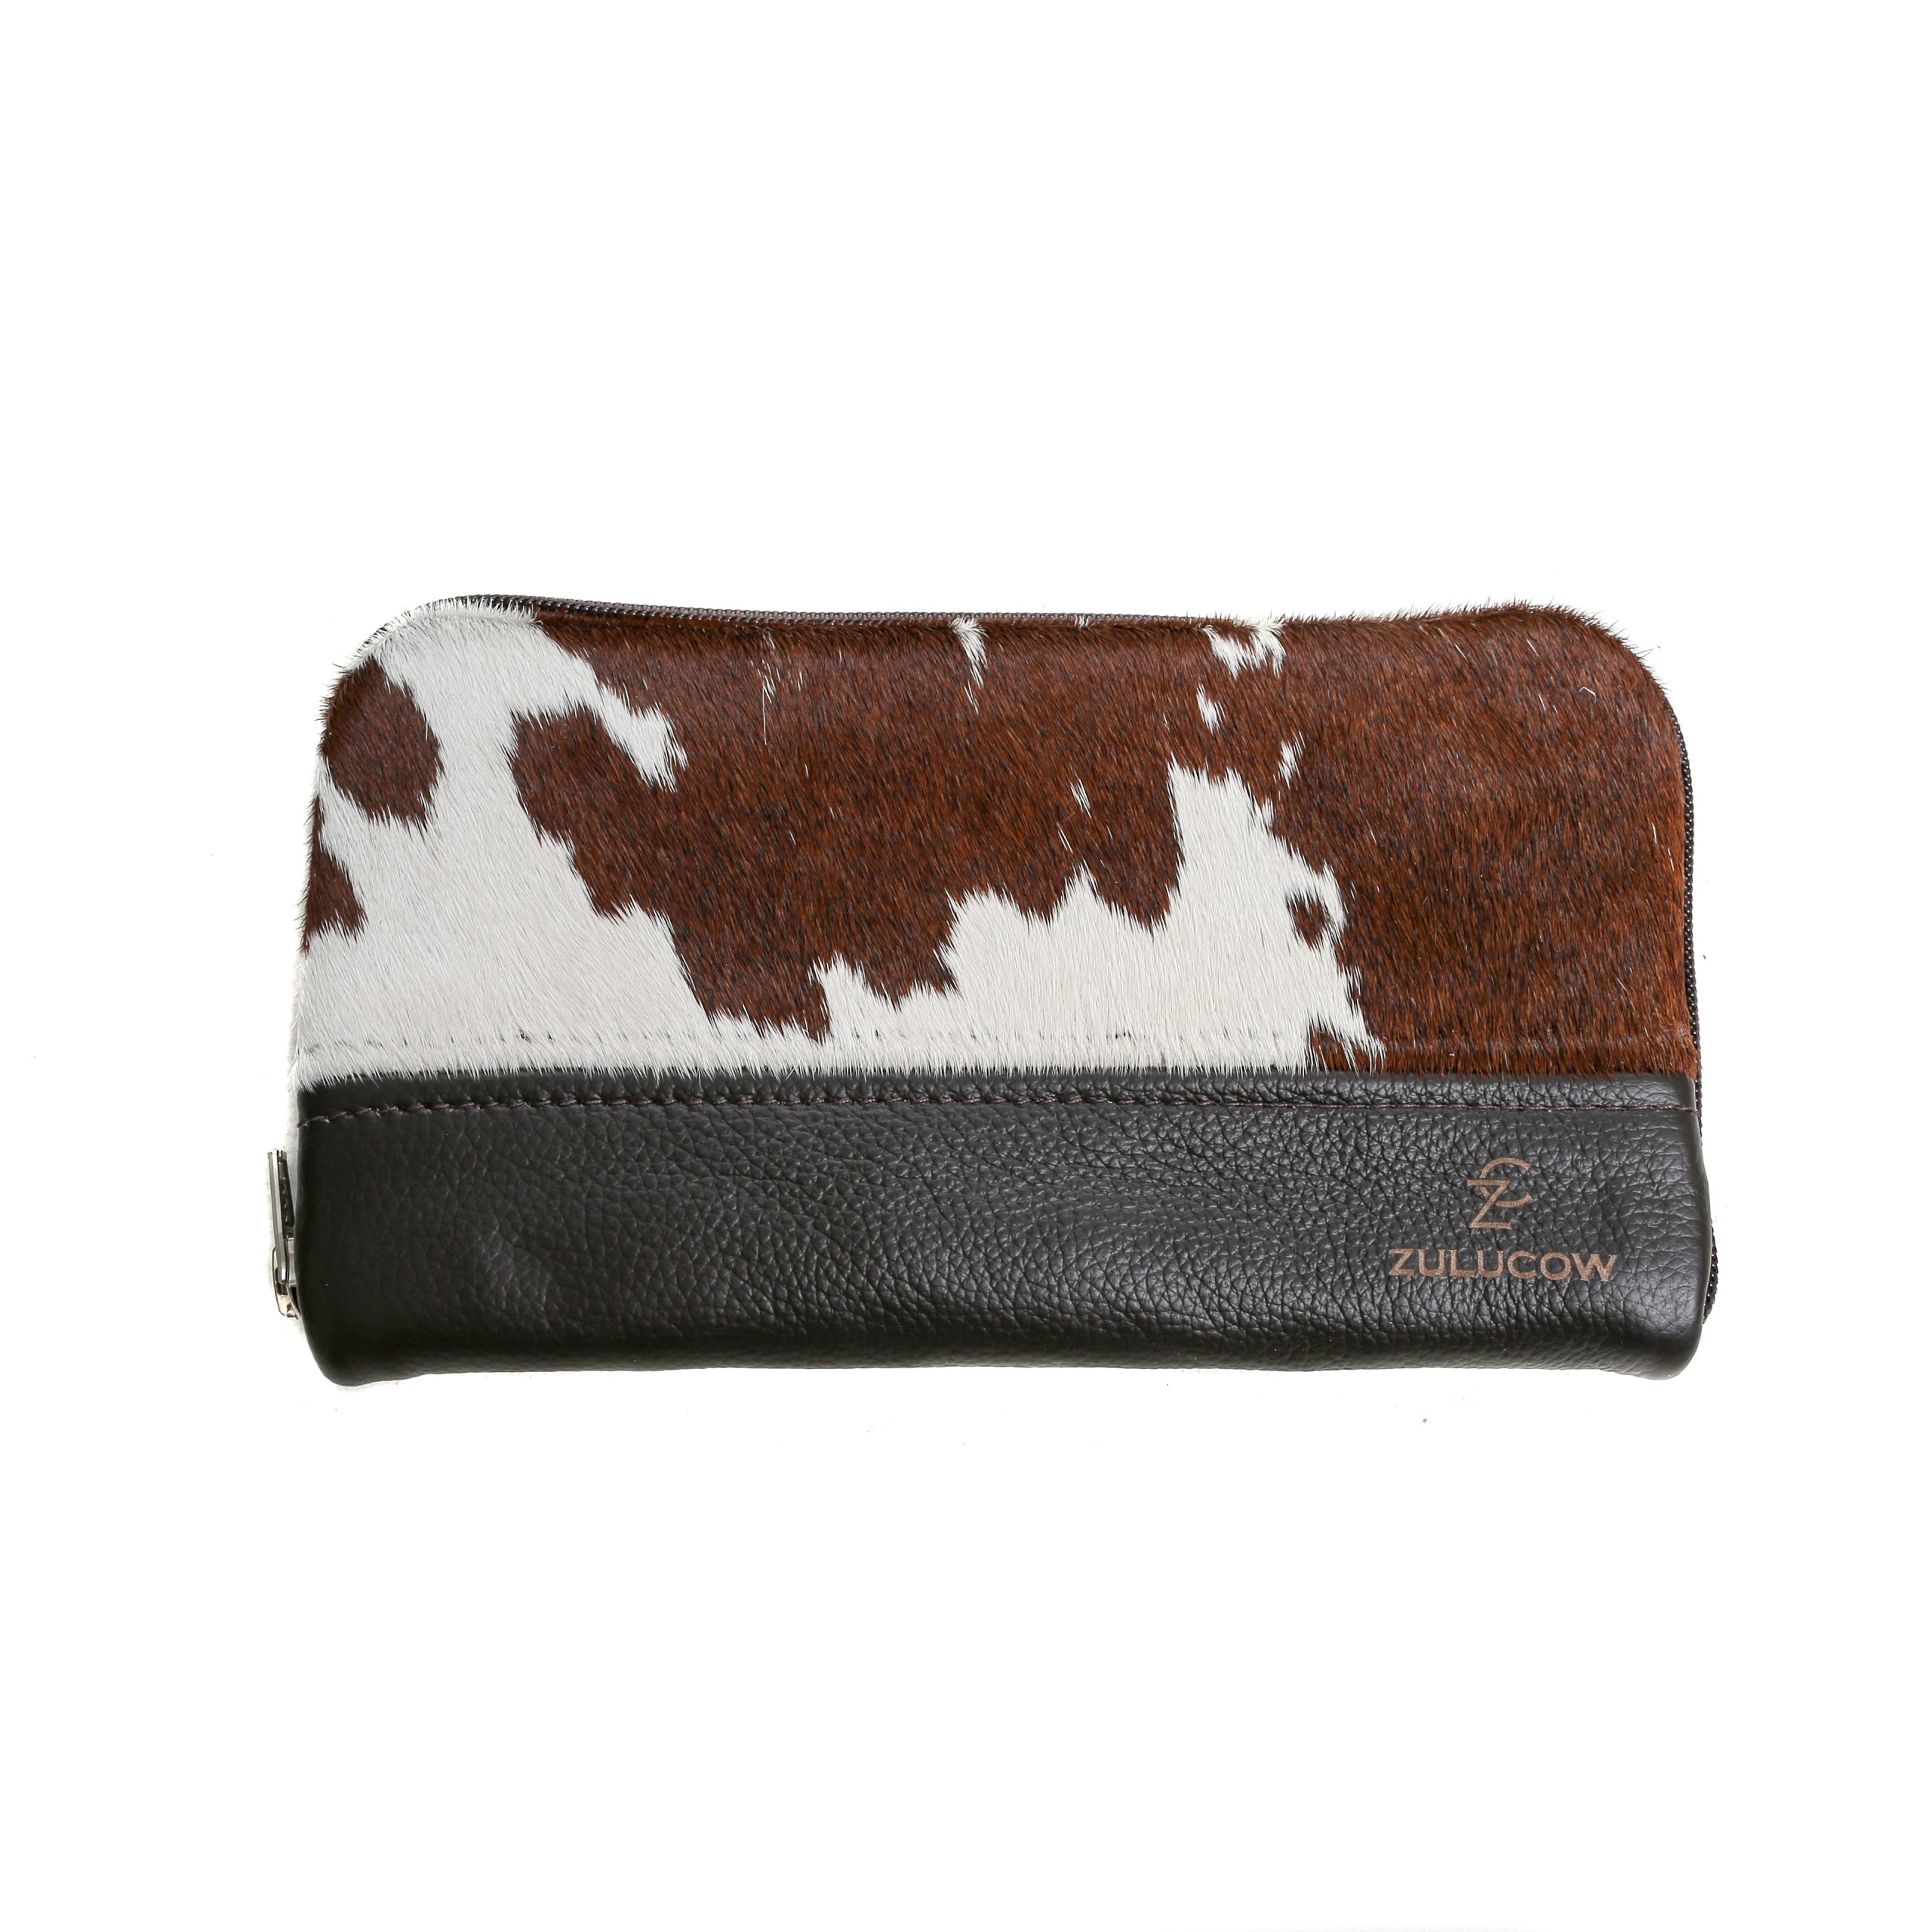 cowhide purse, wallet, travel wallet, clutch, cowhide clutch, sustainable fashion, slow fashion, sustainable, handmade purse, artisan-made, ethically made, christmas gifts for her